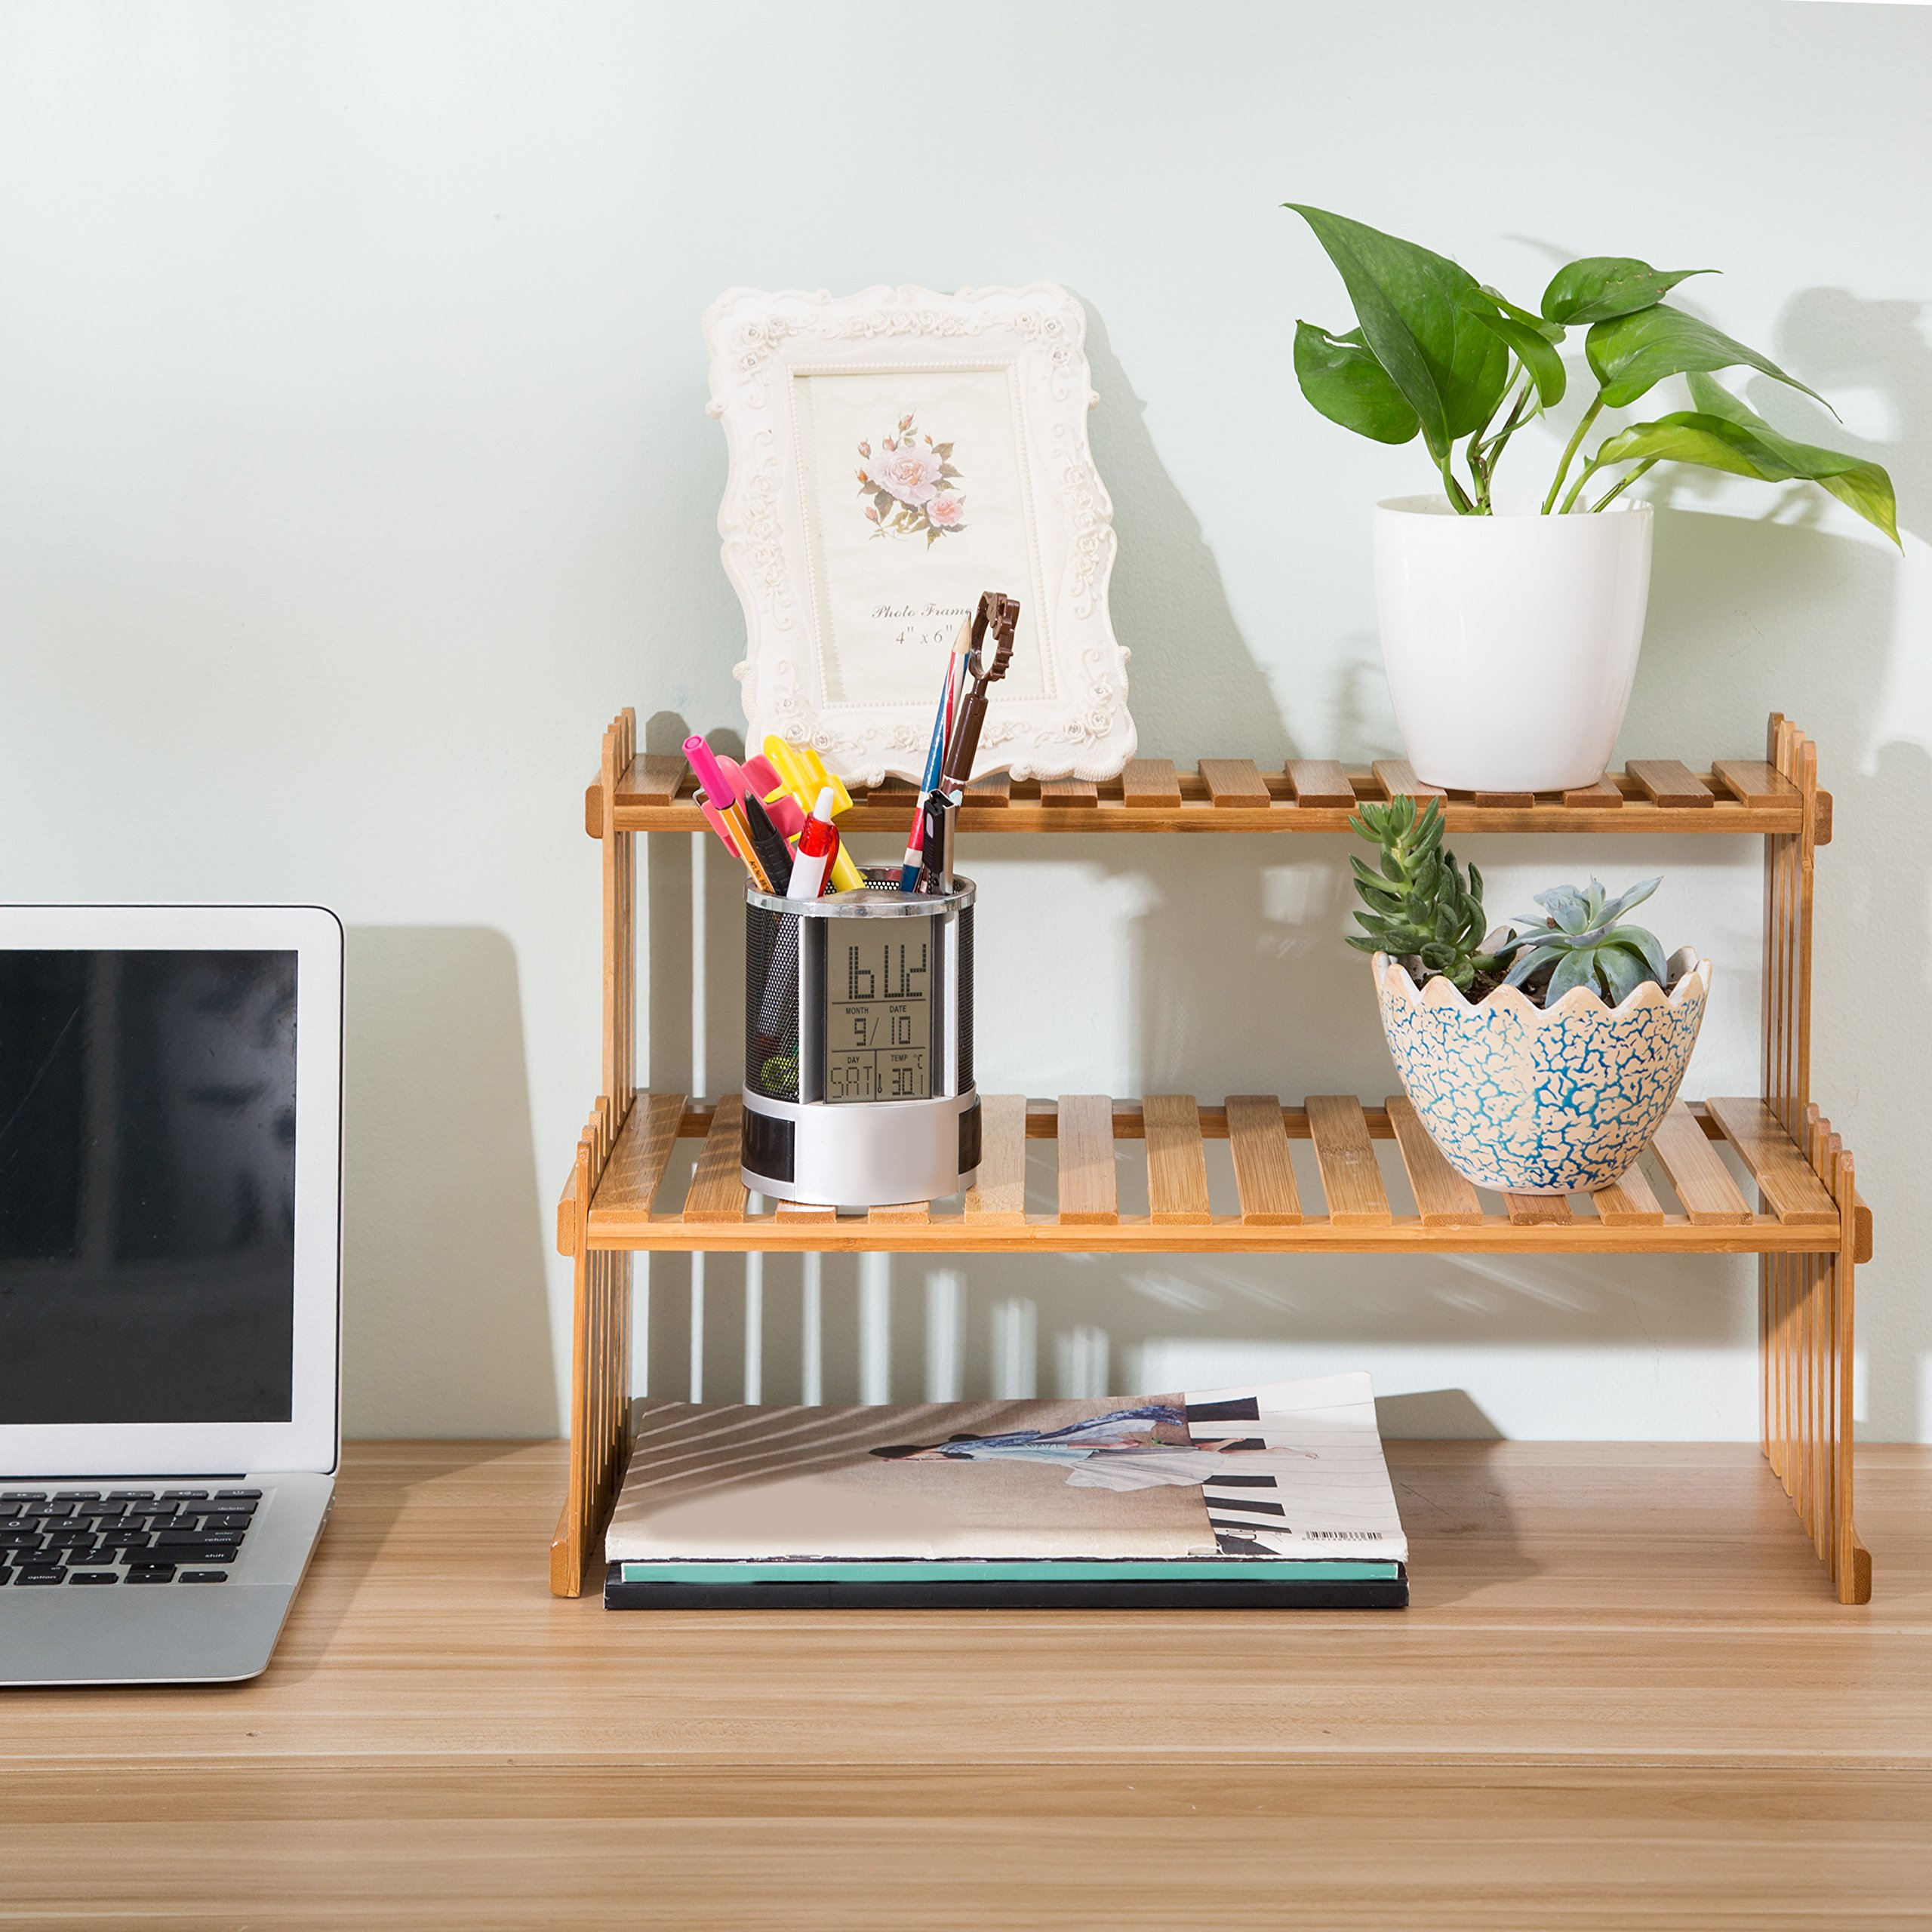 MyGift Tabletop Natural Bamboo Plant Stand, 2 Tier Desktop Shelf Rack, Brown by MyGift (Image #2)